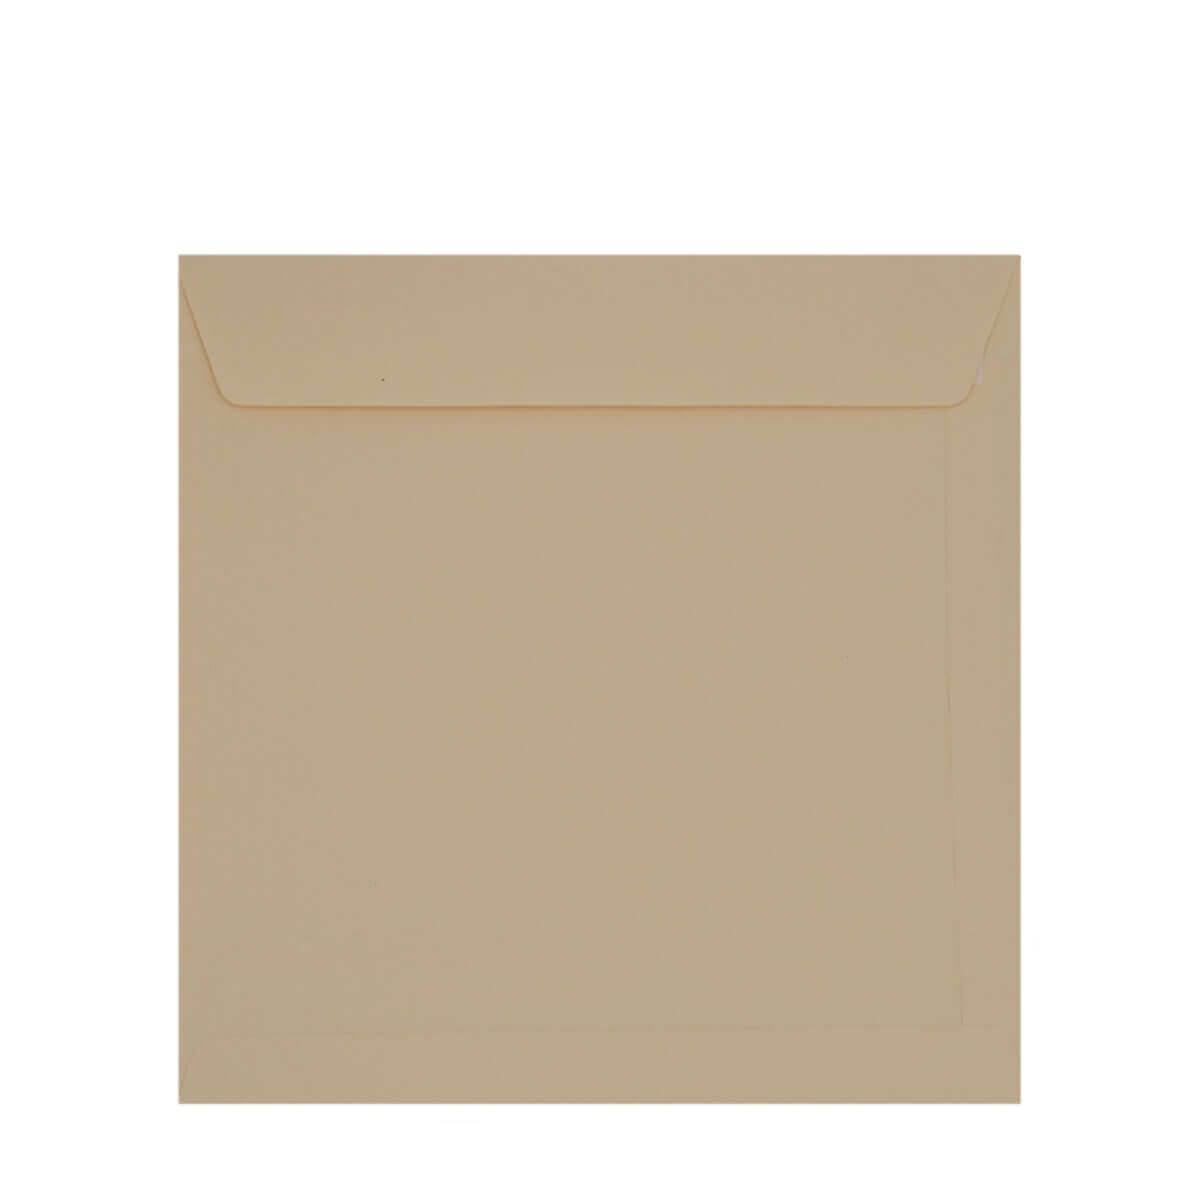 MAGNOLIA 220mm SQUARE PEEL & SEAL ENVELOPES